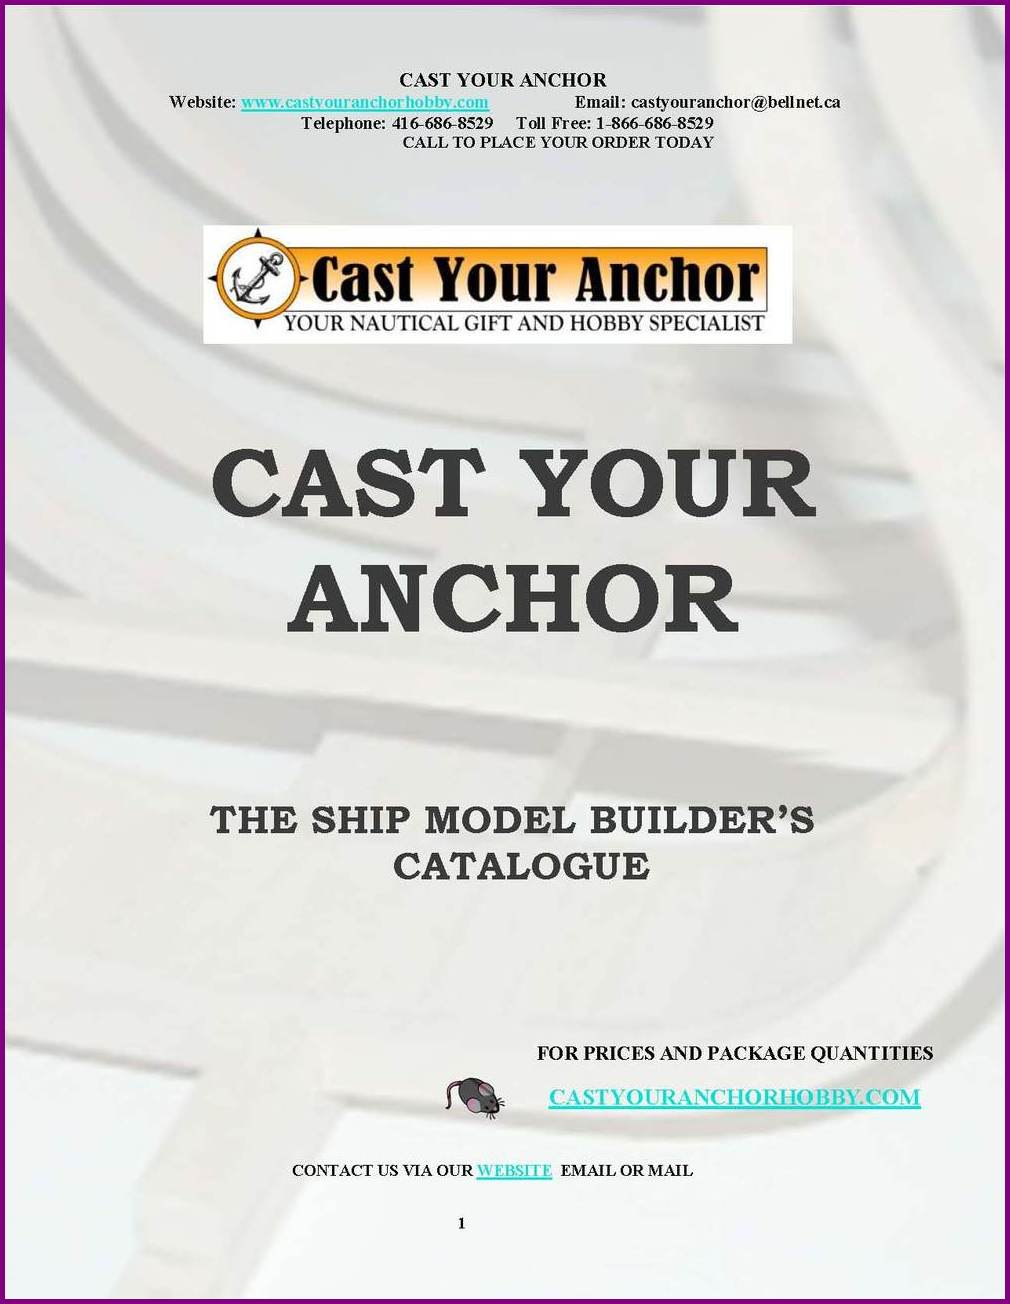 52012 - Ship Model Builders Catalogue